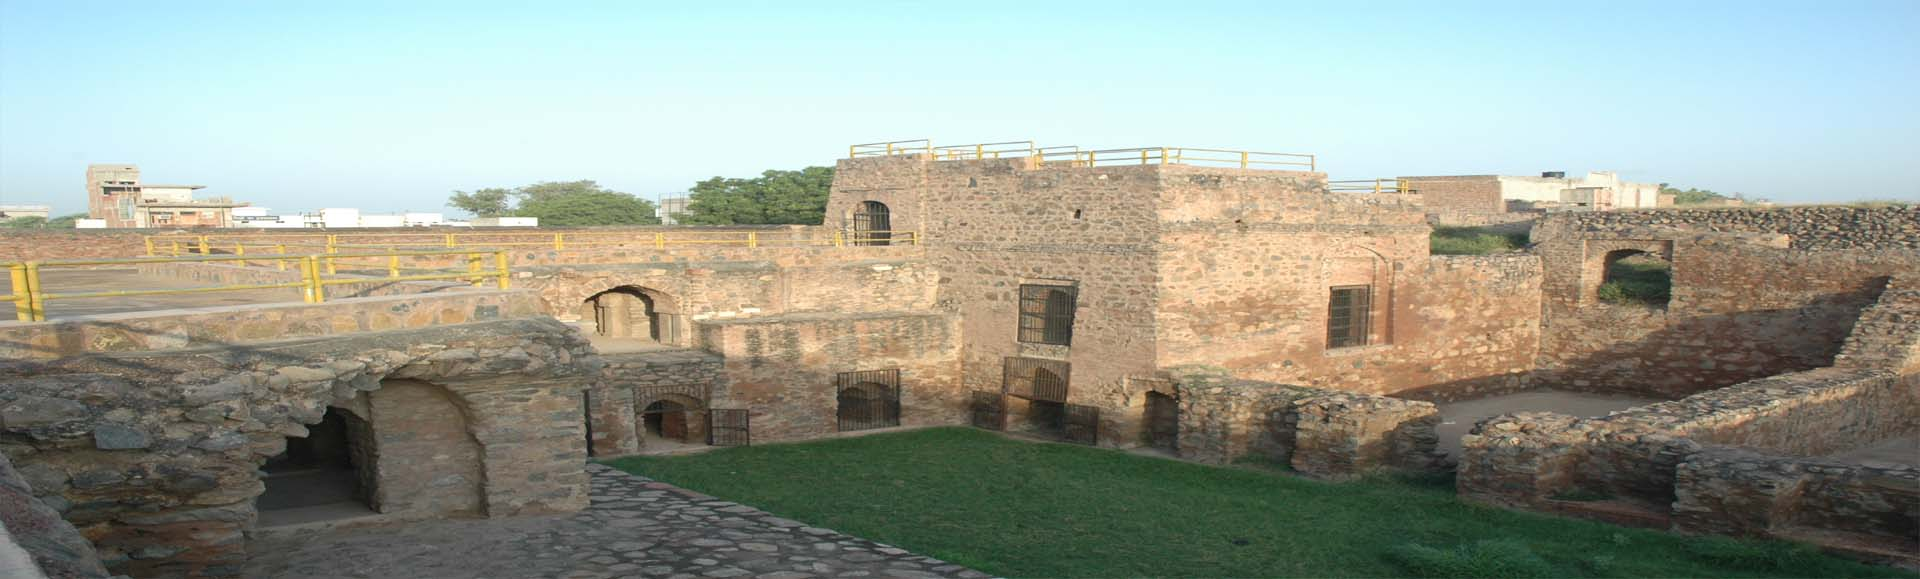 District Hisar, Government of Haryana | The Steel City | India